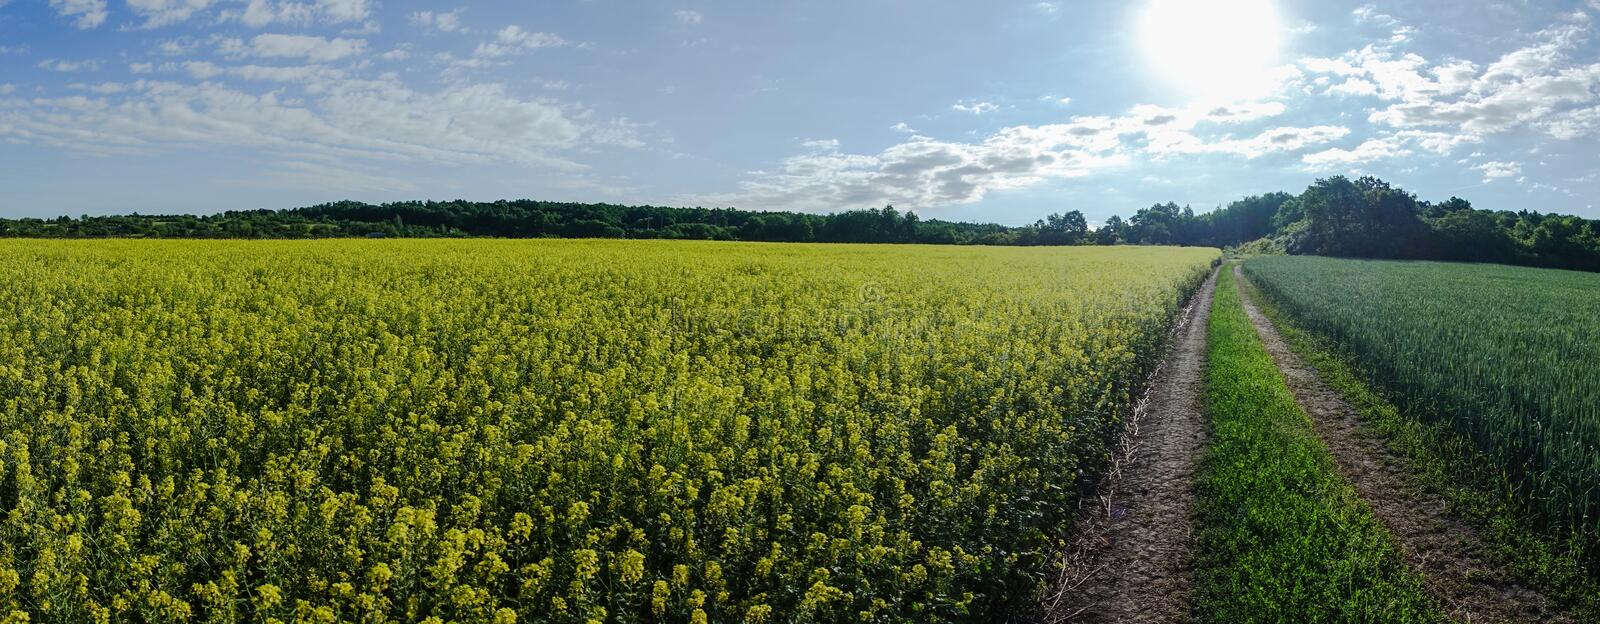 Panoramic view of rapeseed field by summertime royalty free stock image